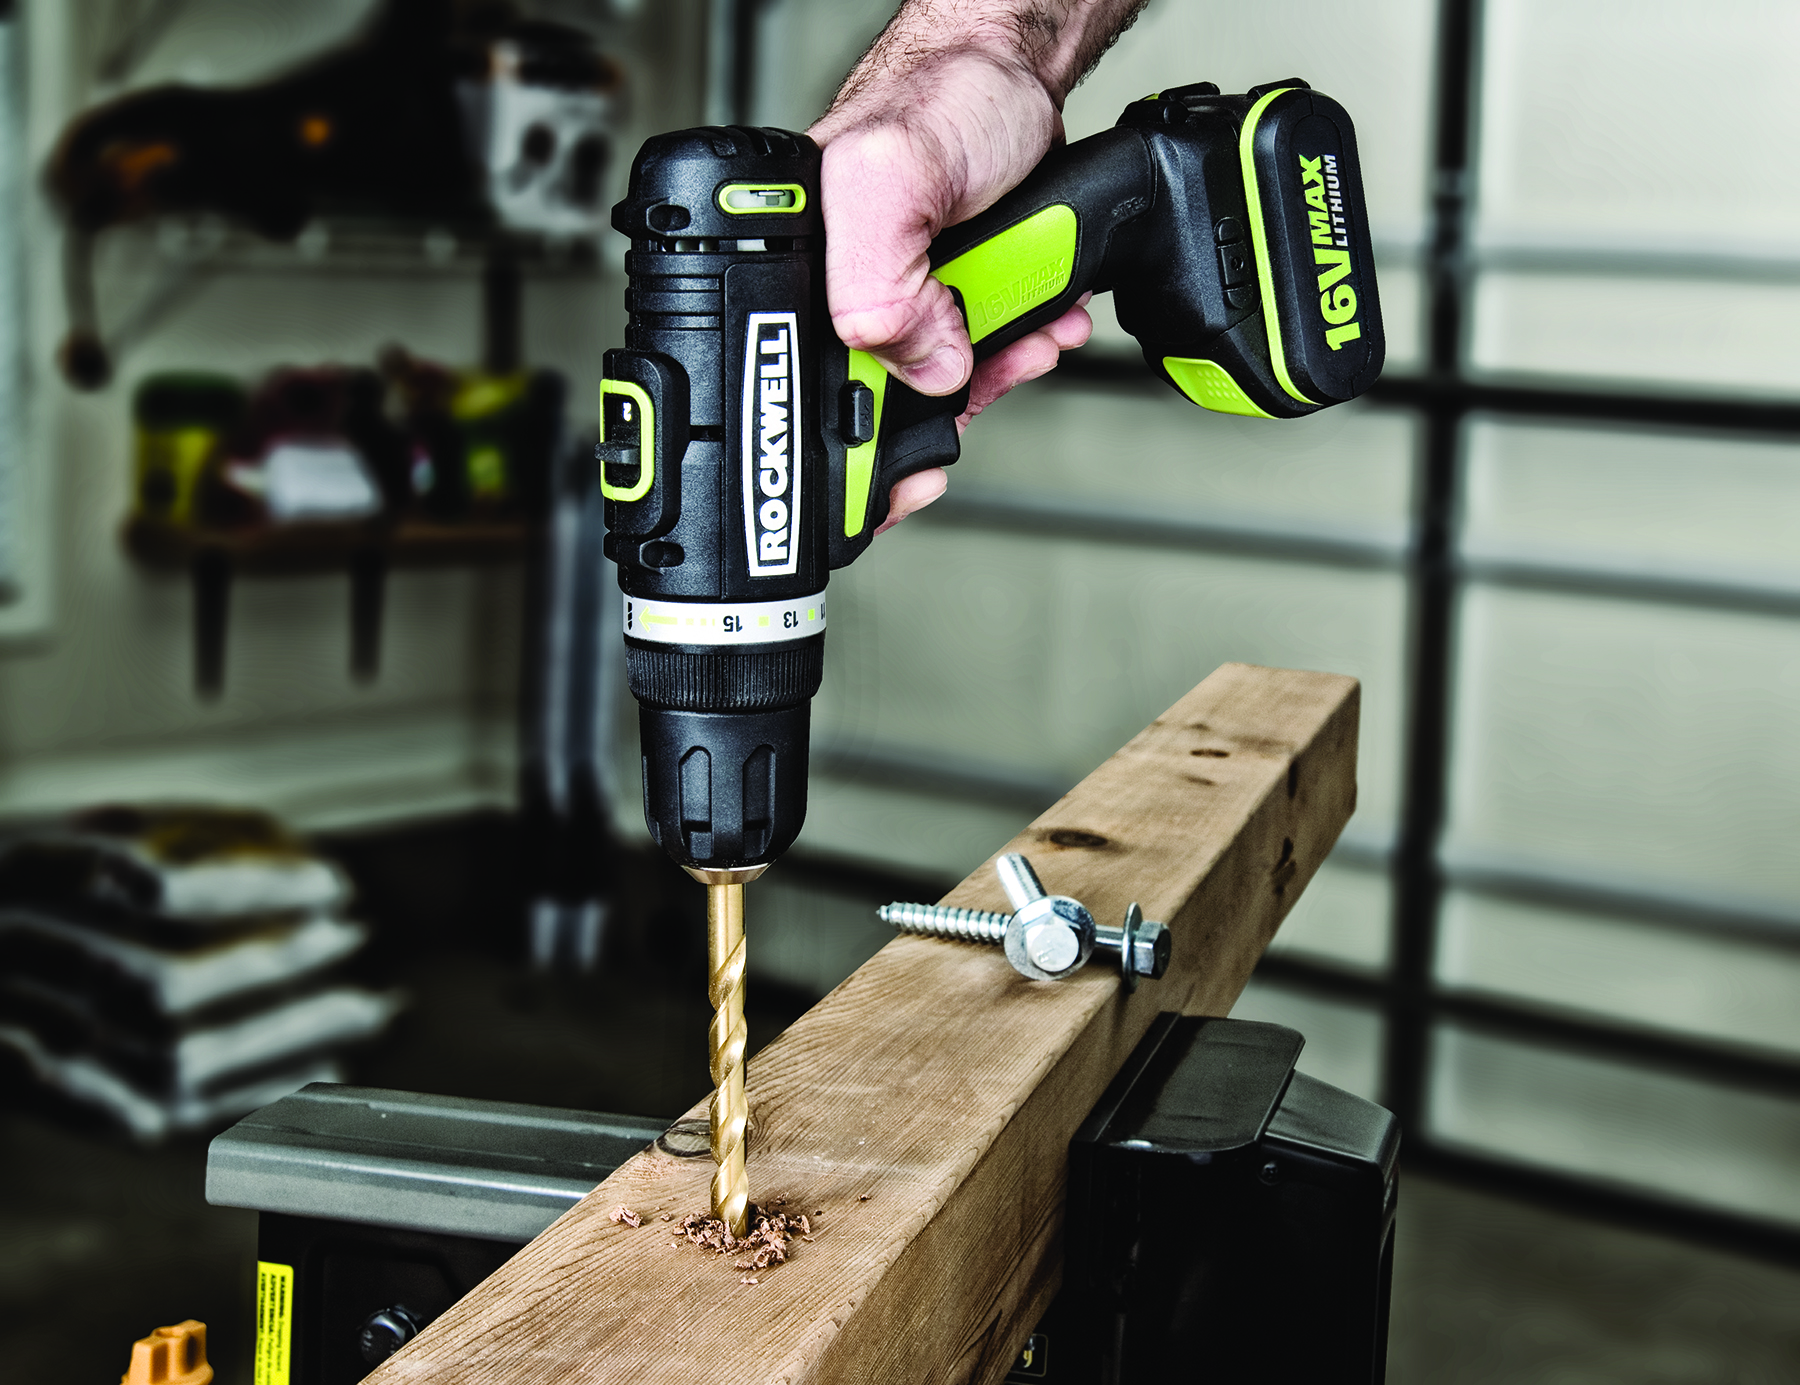 Rockwell S New 16v Drill Driver And Impact Driver Combine Top Performance And Batteries For Life